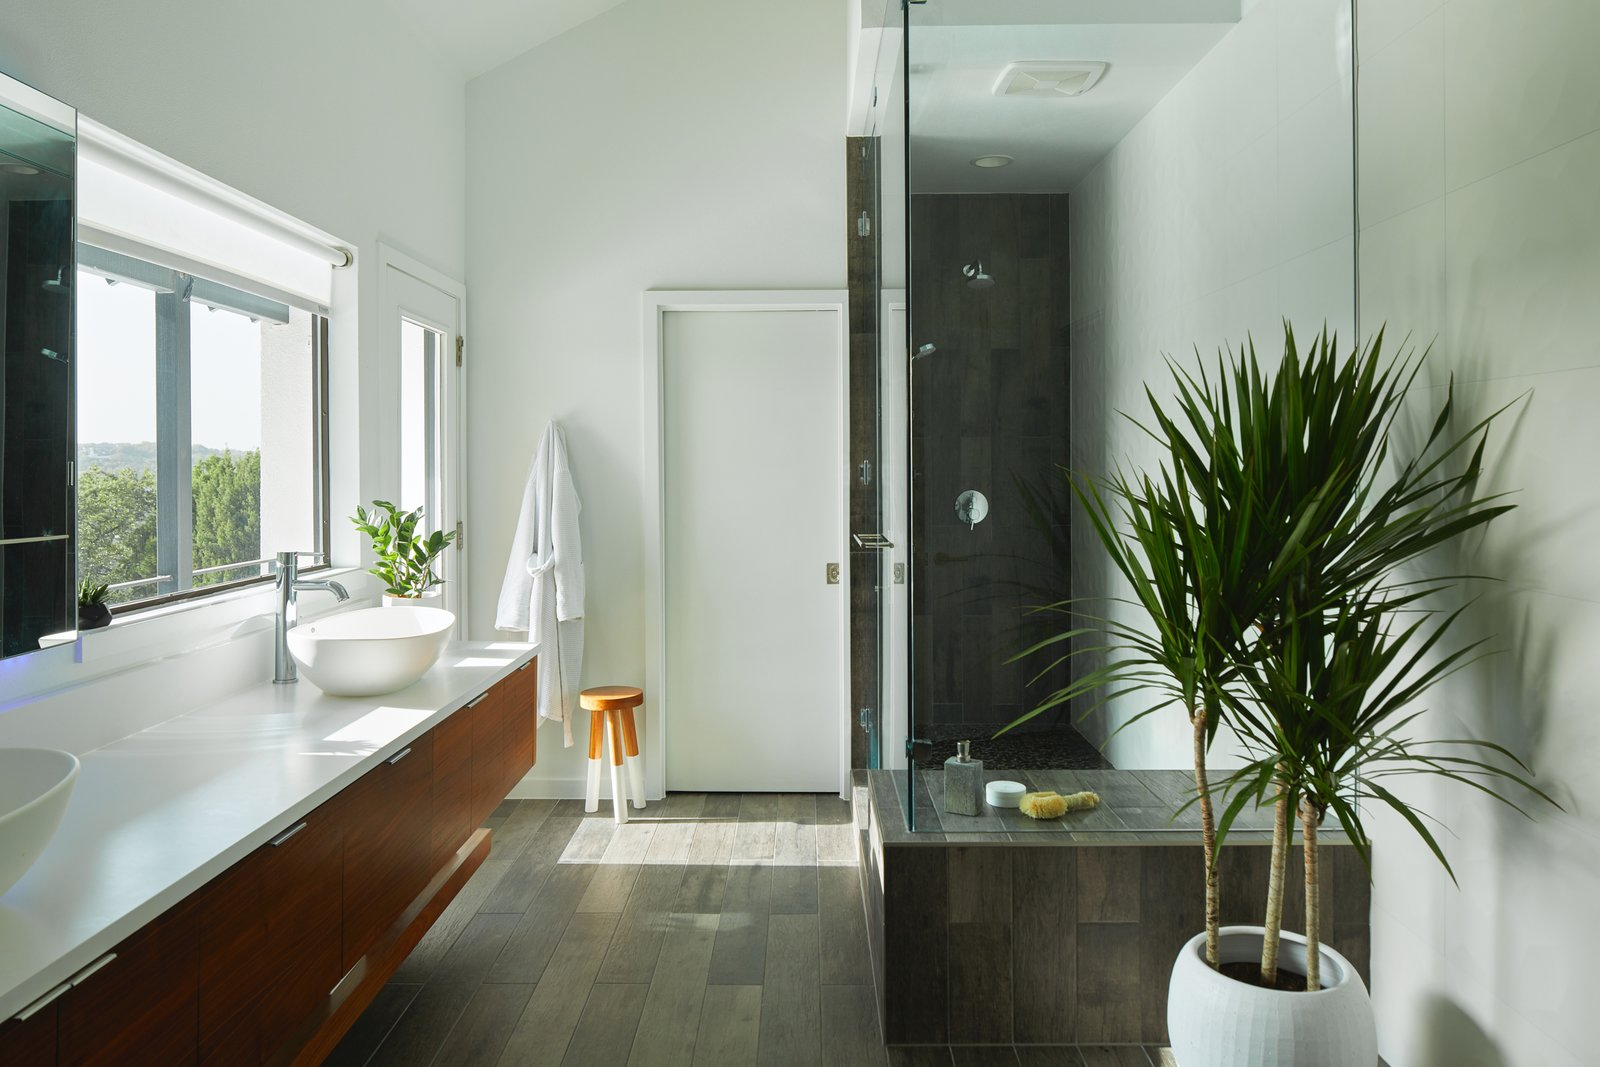 Bath, Engineered Quartz, Enclosed, Recessed, Dark Hardwood, Pedestal, Wall, Full, Ceiling, Porcelain Tile, and One Piece Via Media Residence by Matt Fajkus Architecture | Photo by Leonid Furmansky  Bath One Piece Recessed Pedestal Photos from Via Media Residence